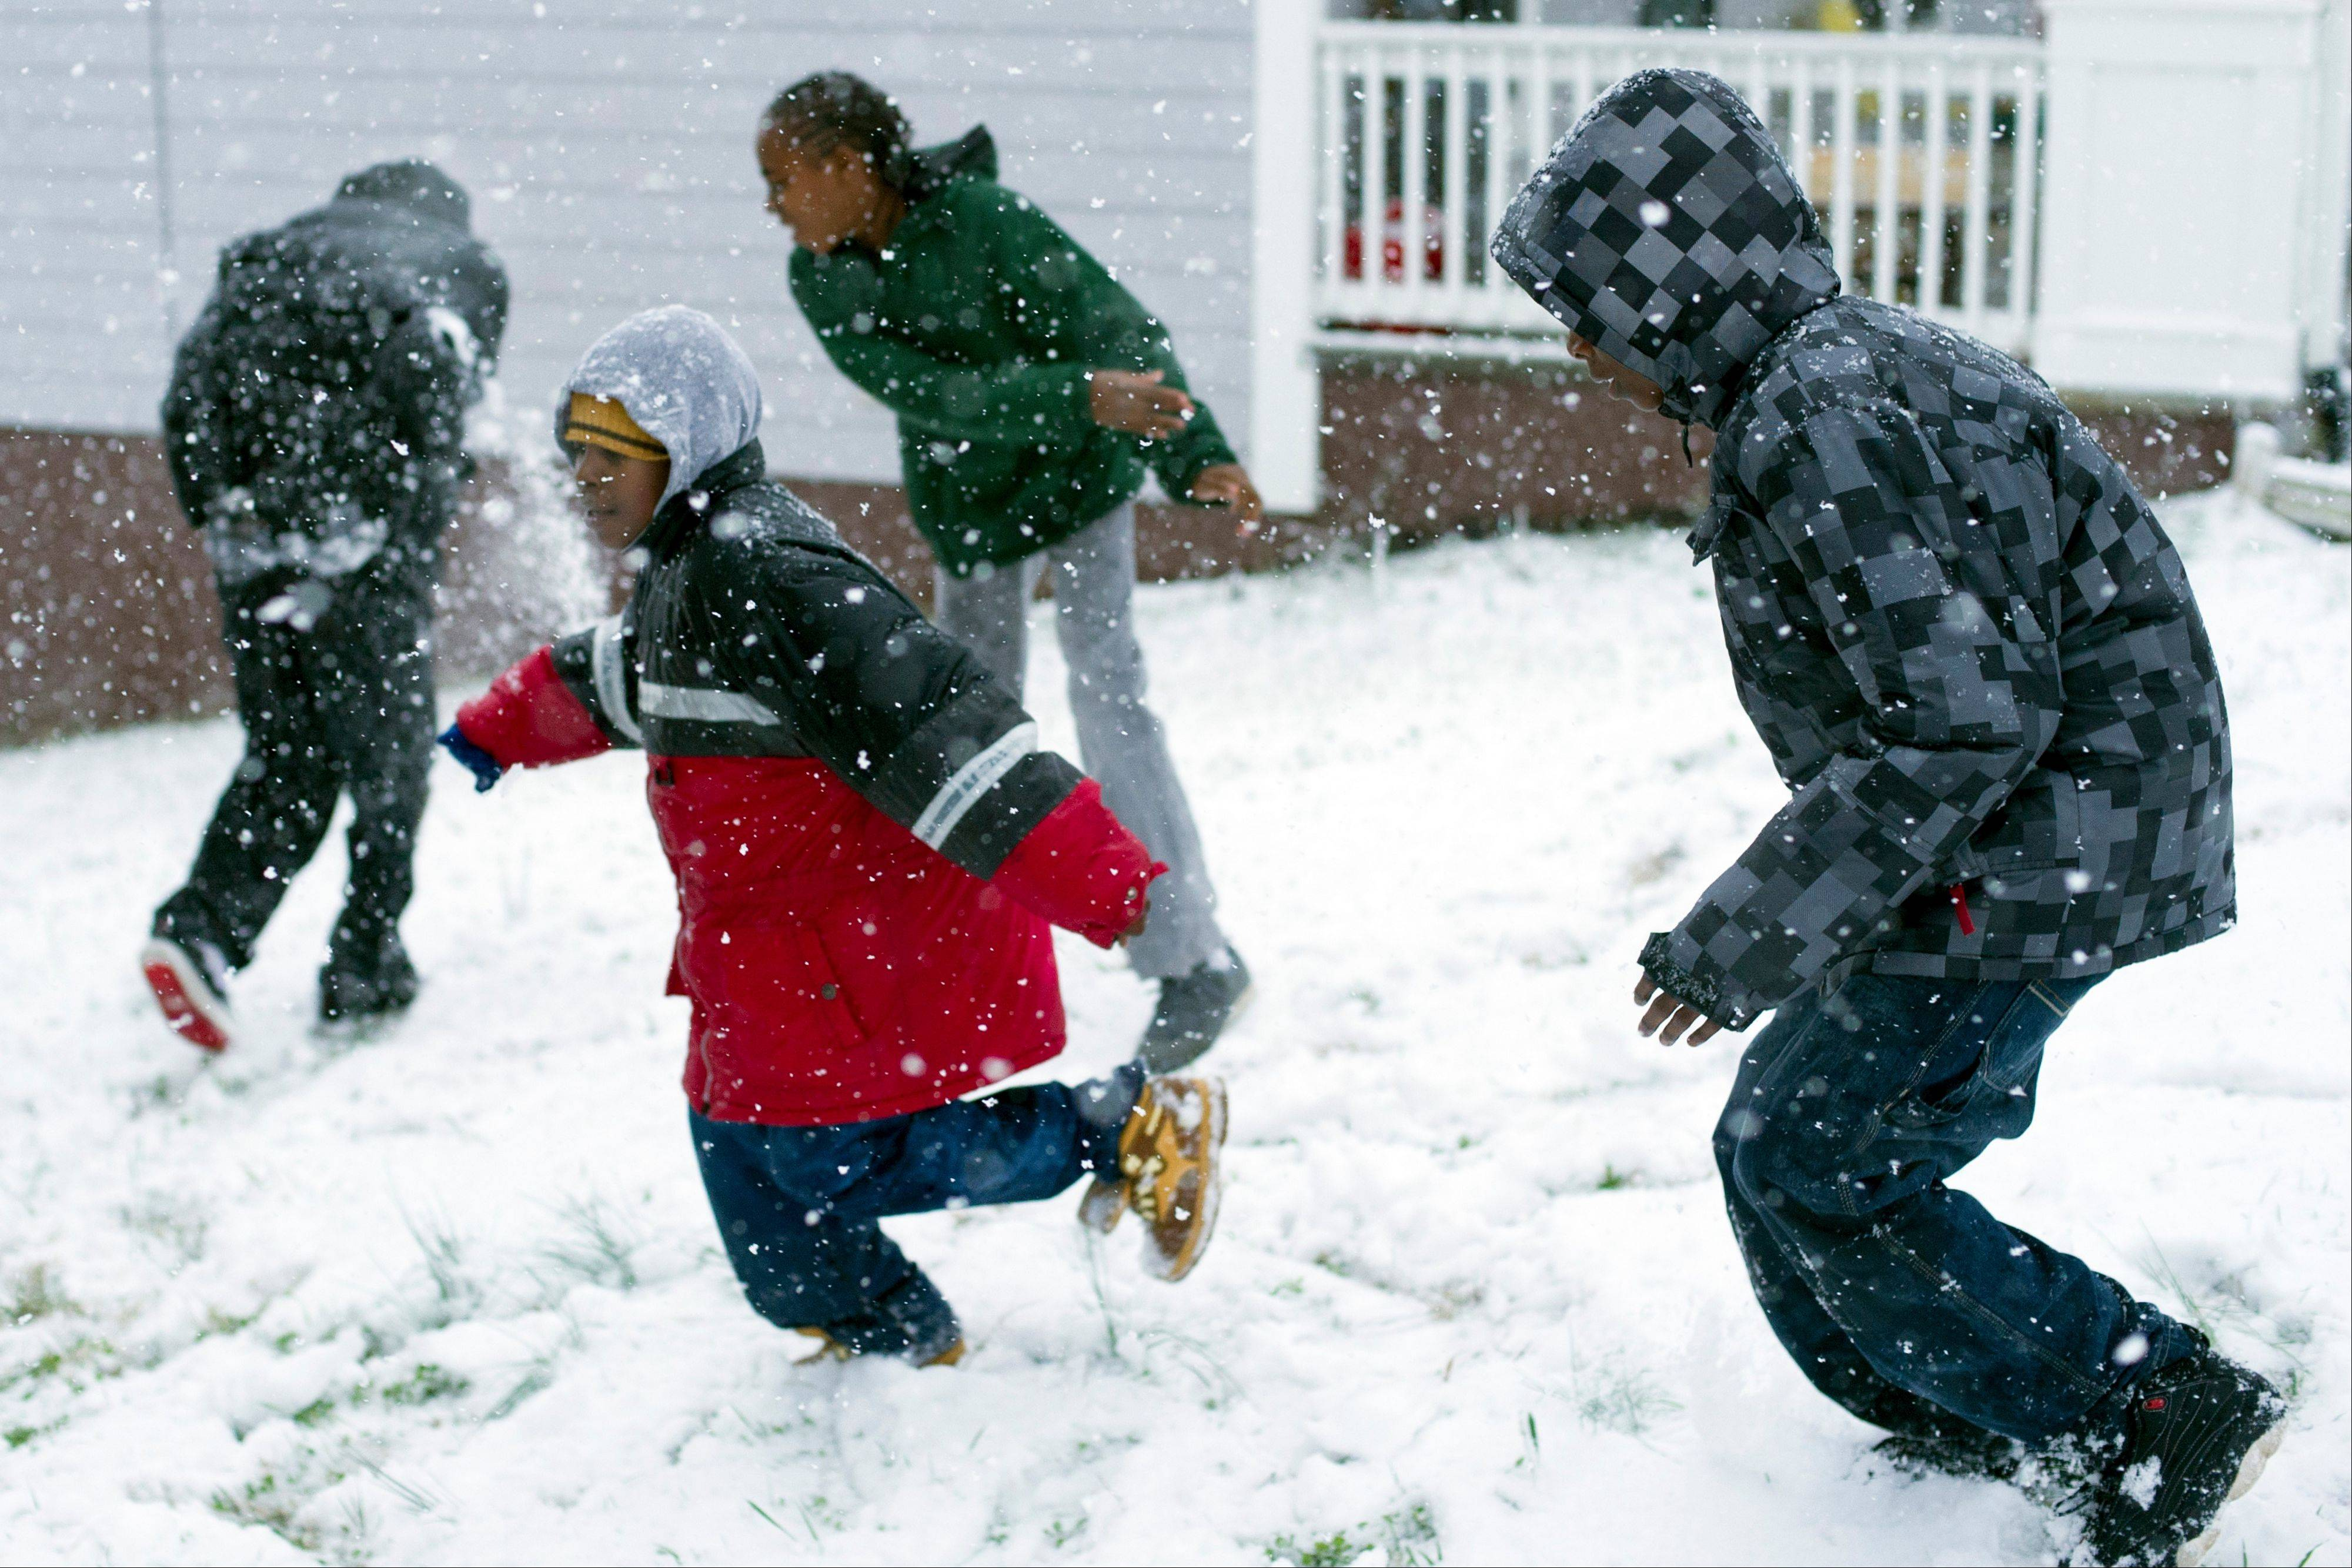 Children play in the snow Thursday, Jan. 17, 2013, in Knoxville, Tenn. A winter storm was making its way across the Southeast on Thursday, dumping 4 inches of snow in Mississippi and playing a role in a traffic fatality there, with the system expected to spread across northern Georgia and into the Carolinas and Virginia, according to the National Weather Service.